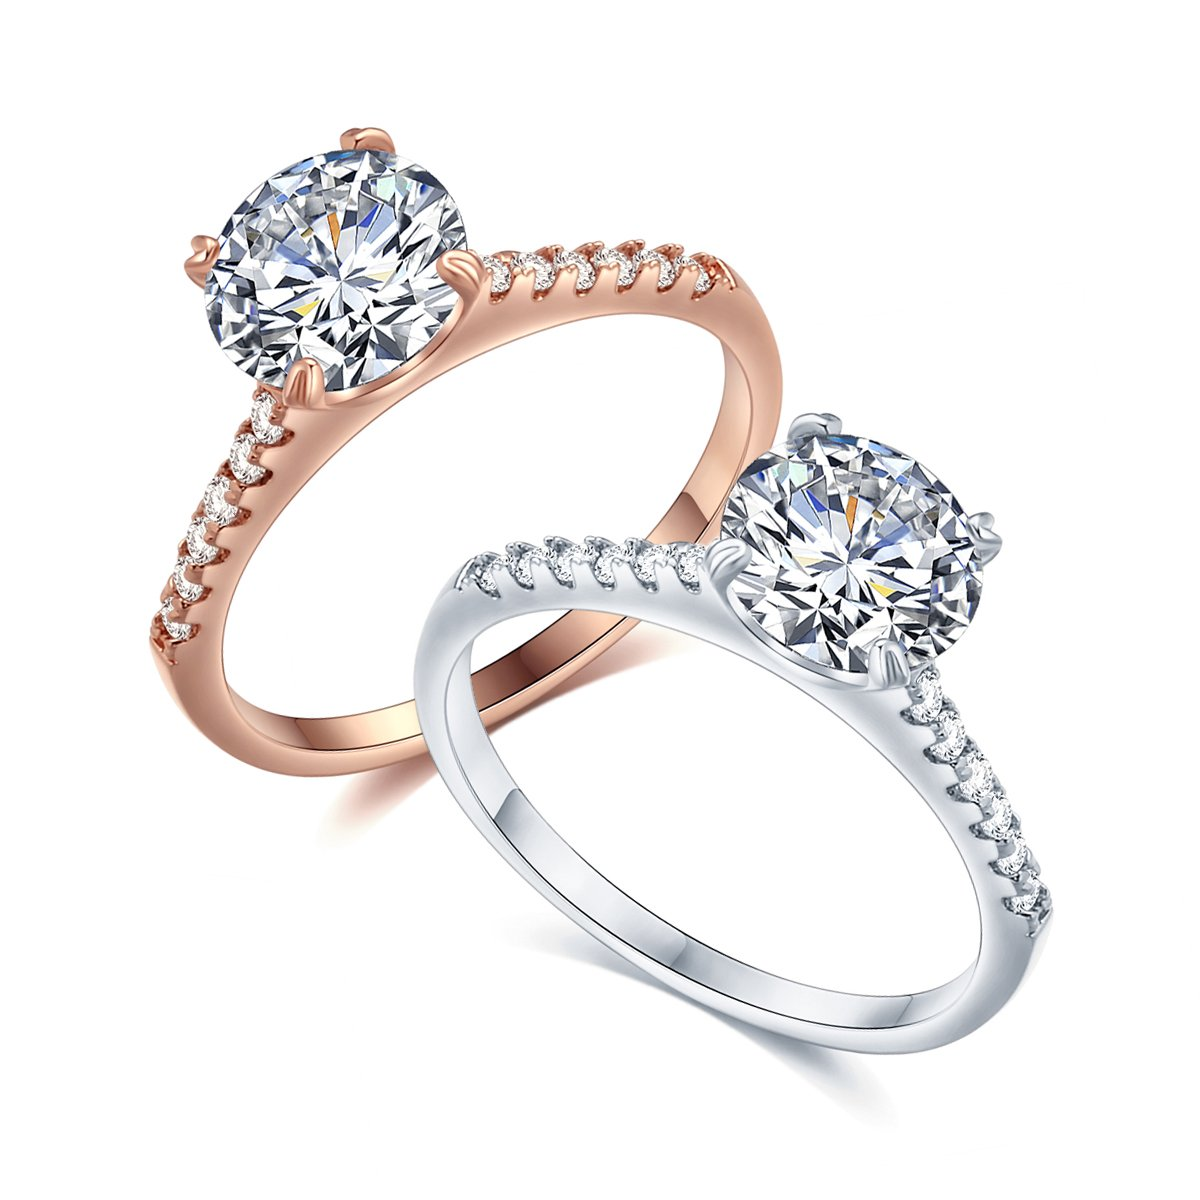 Round Cut Aaa Cubic Zirconia Stone Sterling Silverrose Goldplated Bronze Base Engagement Ring Wedding Promise Rings For Women Life Time Warranty: Silver Rose Ring Wedding At Websimilar.org